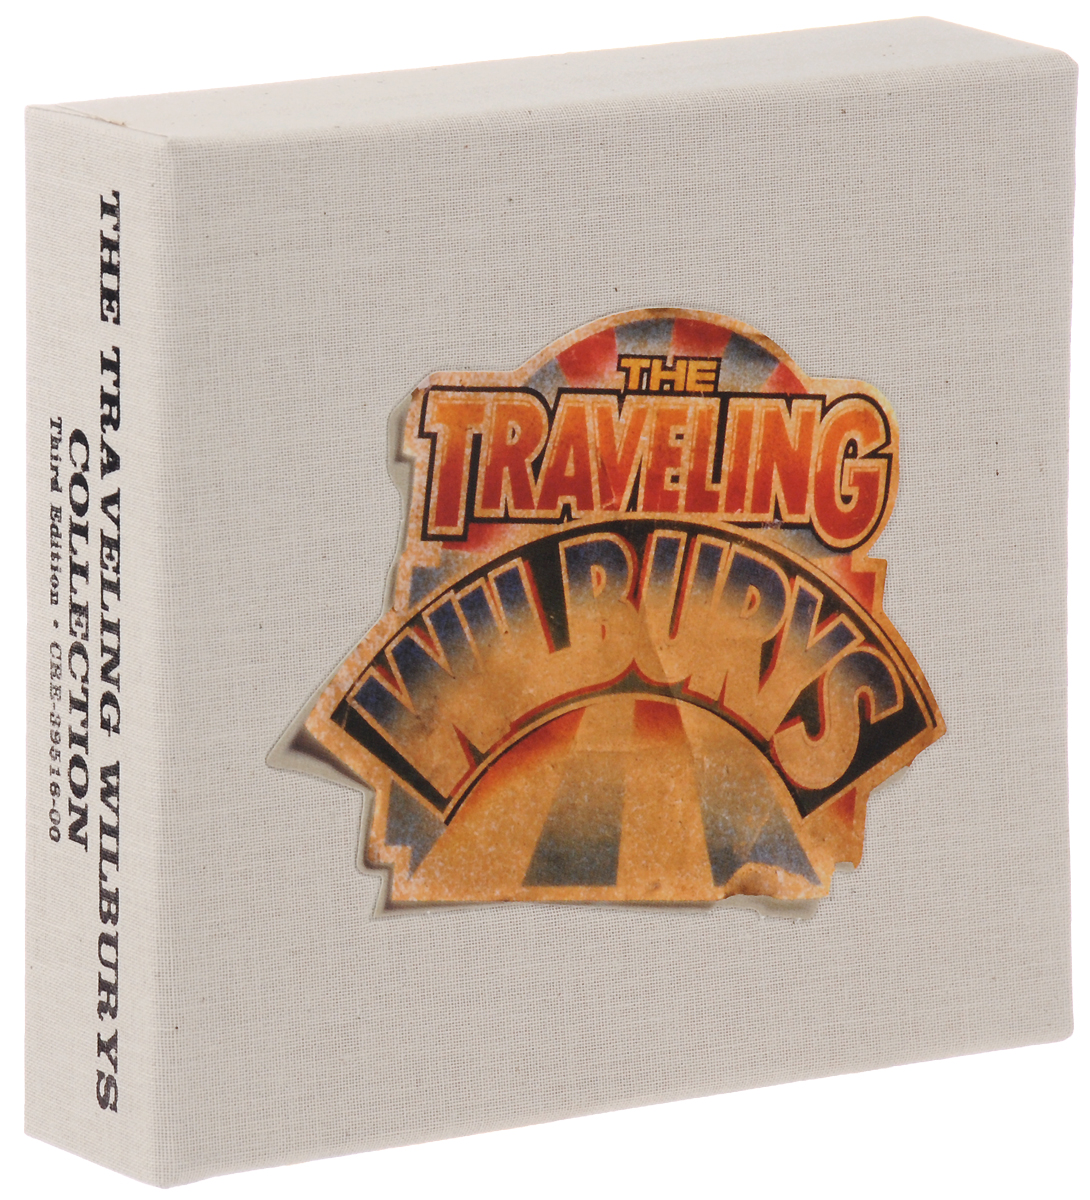 The Traveling Wilburys The Traveling Wilburys. The Traveling Wilburys Collection (2 CD + DVD) блокада 2 dvd